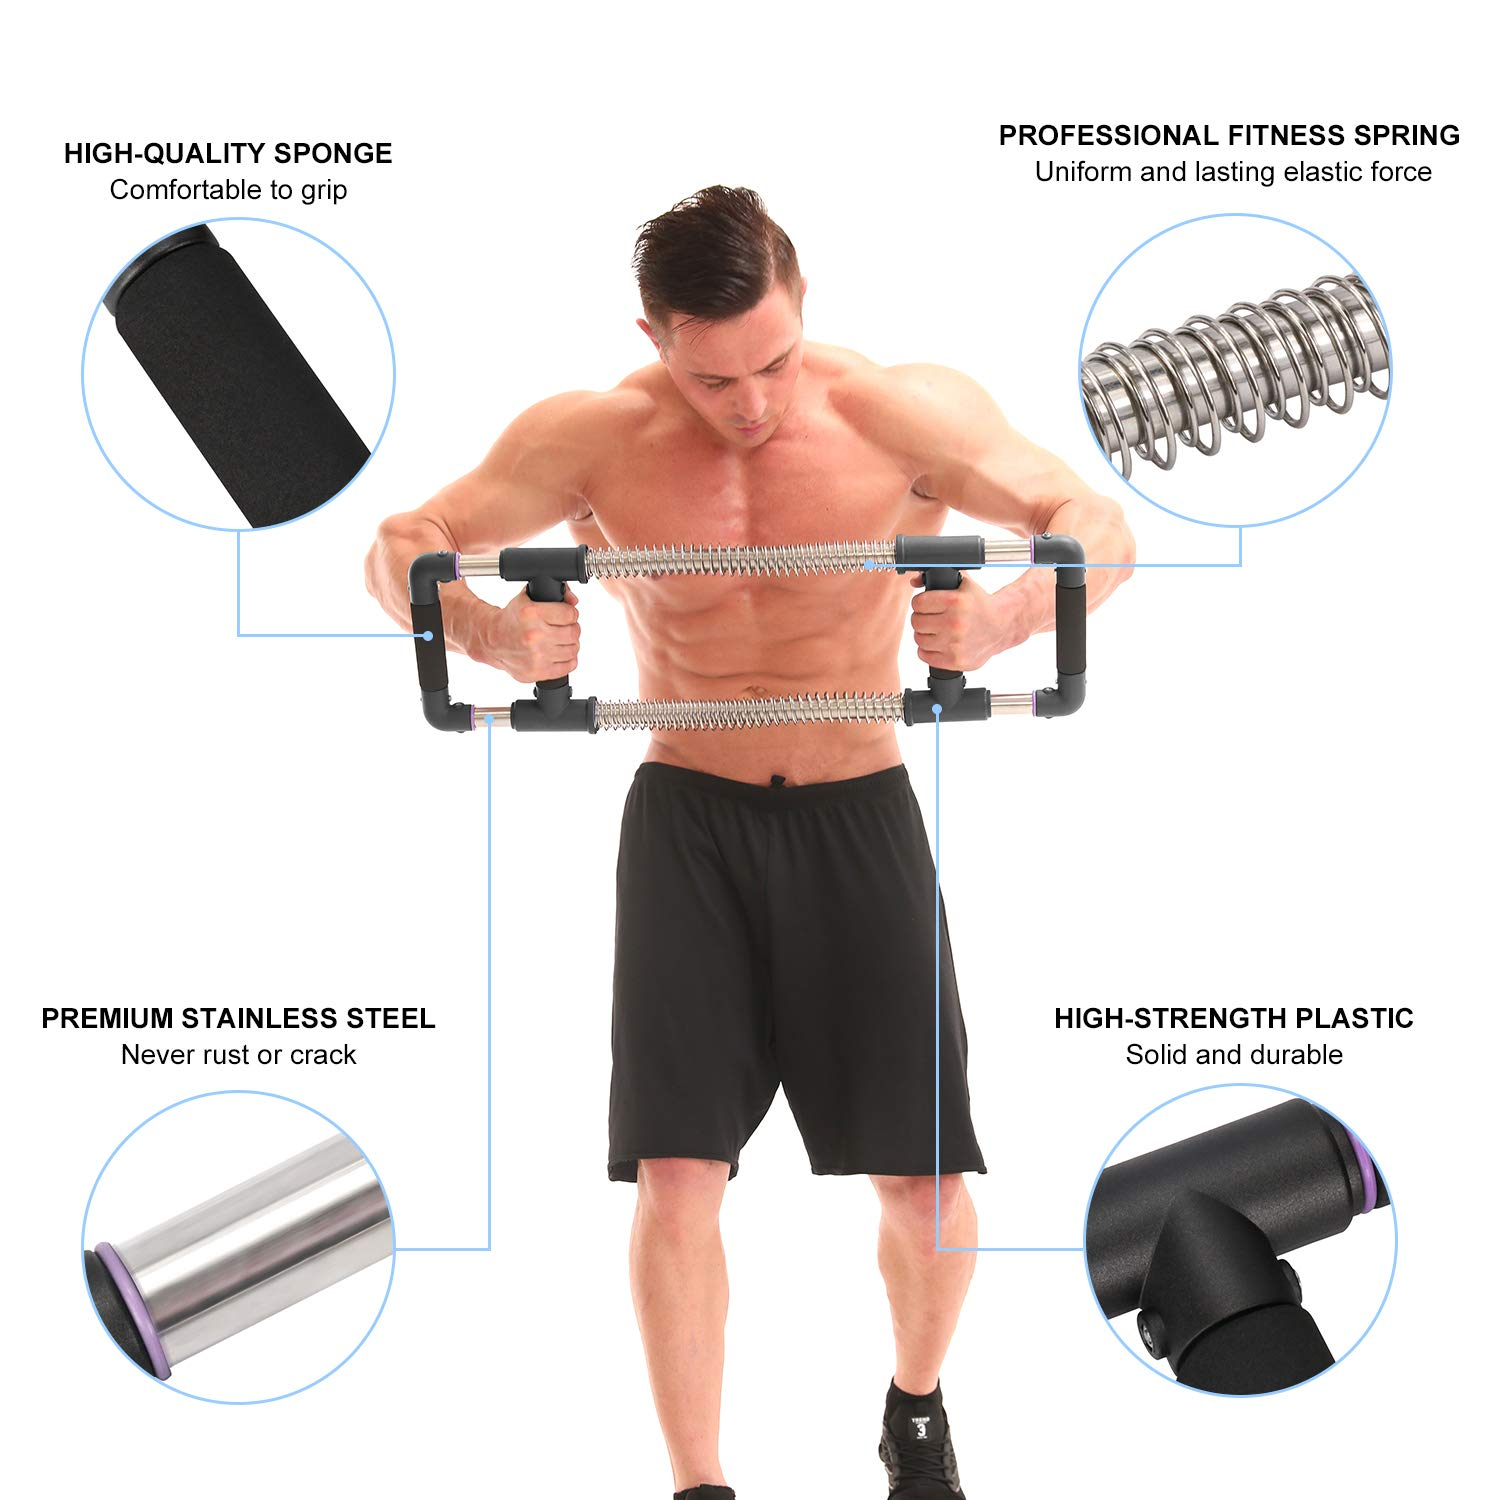 GoFitness Super Push Down Bar - Total Upper Body Workout Equipment, Press Down Machine - Chest Workout, Strength Training, Home Fitness by GoFitness (Image #5)